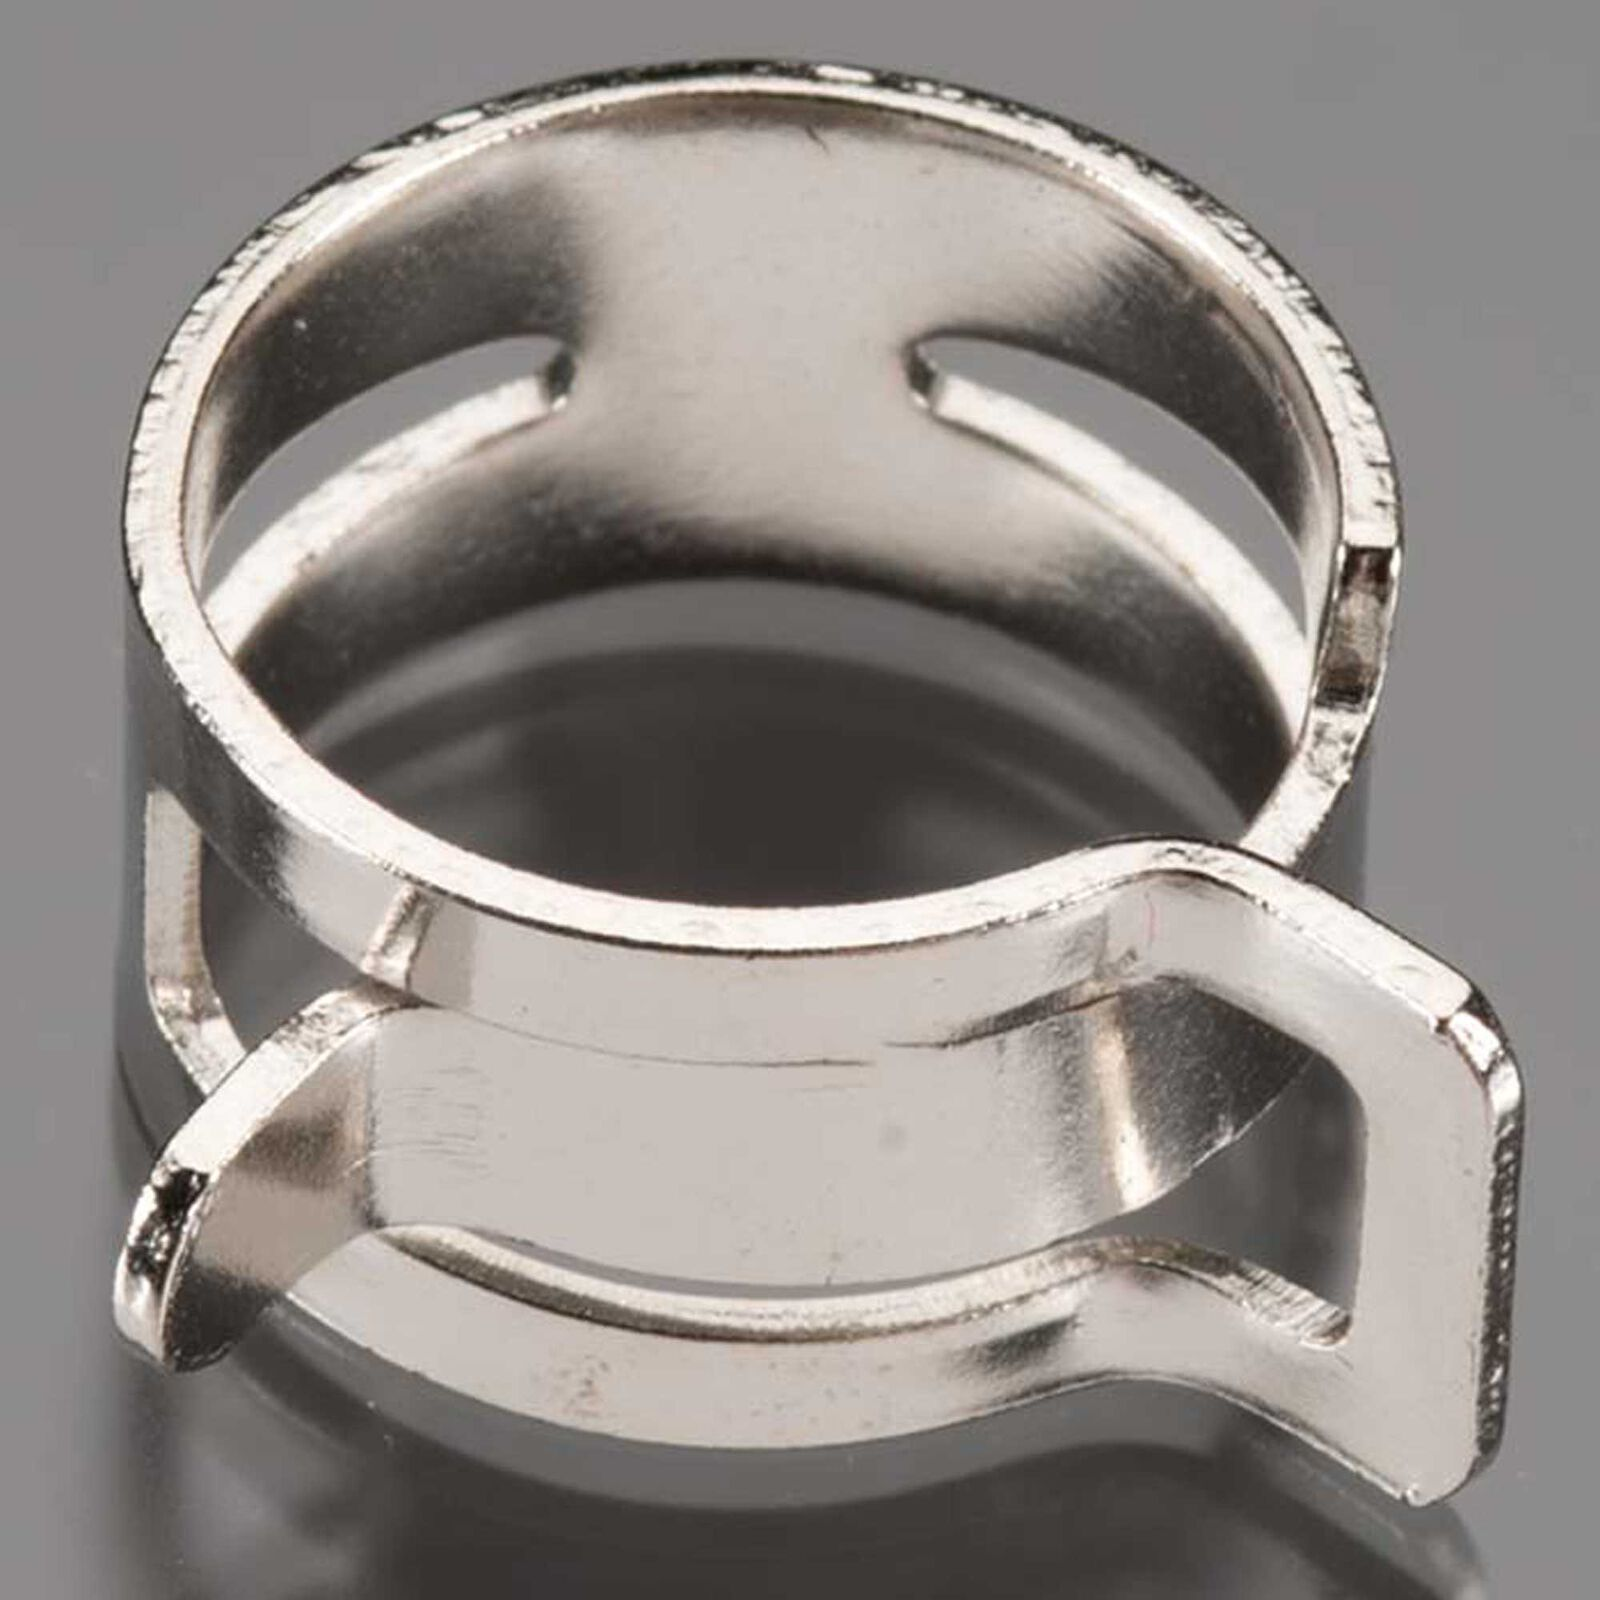 Exhaust Clamp 20: DLE 55-RA